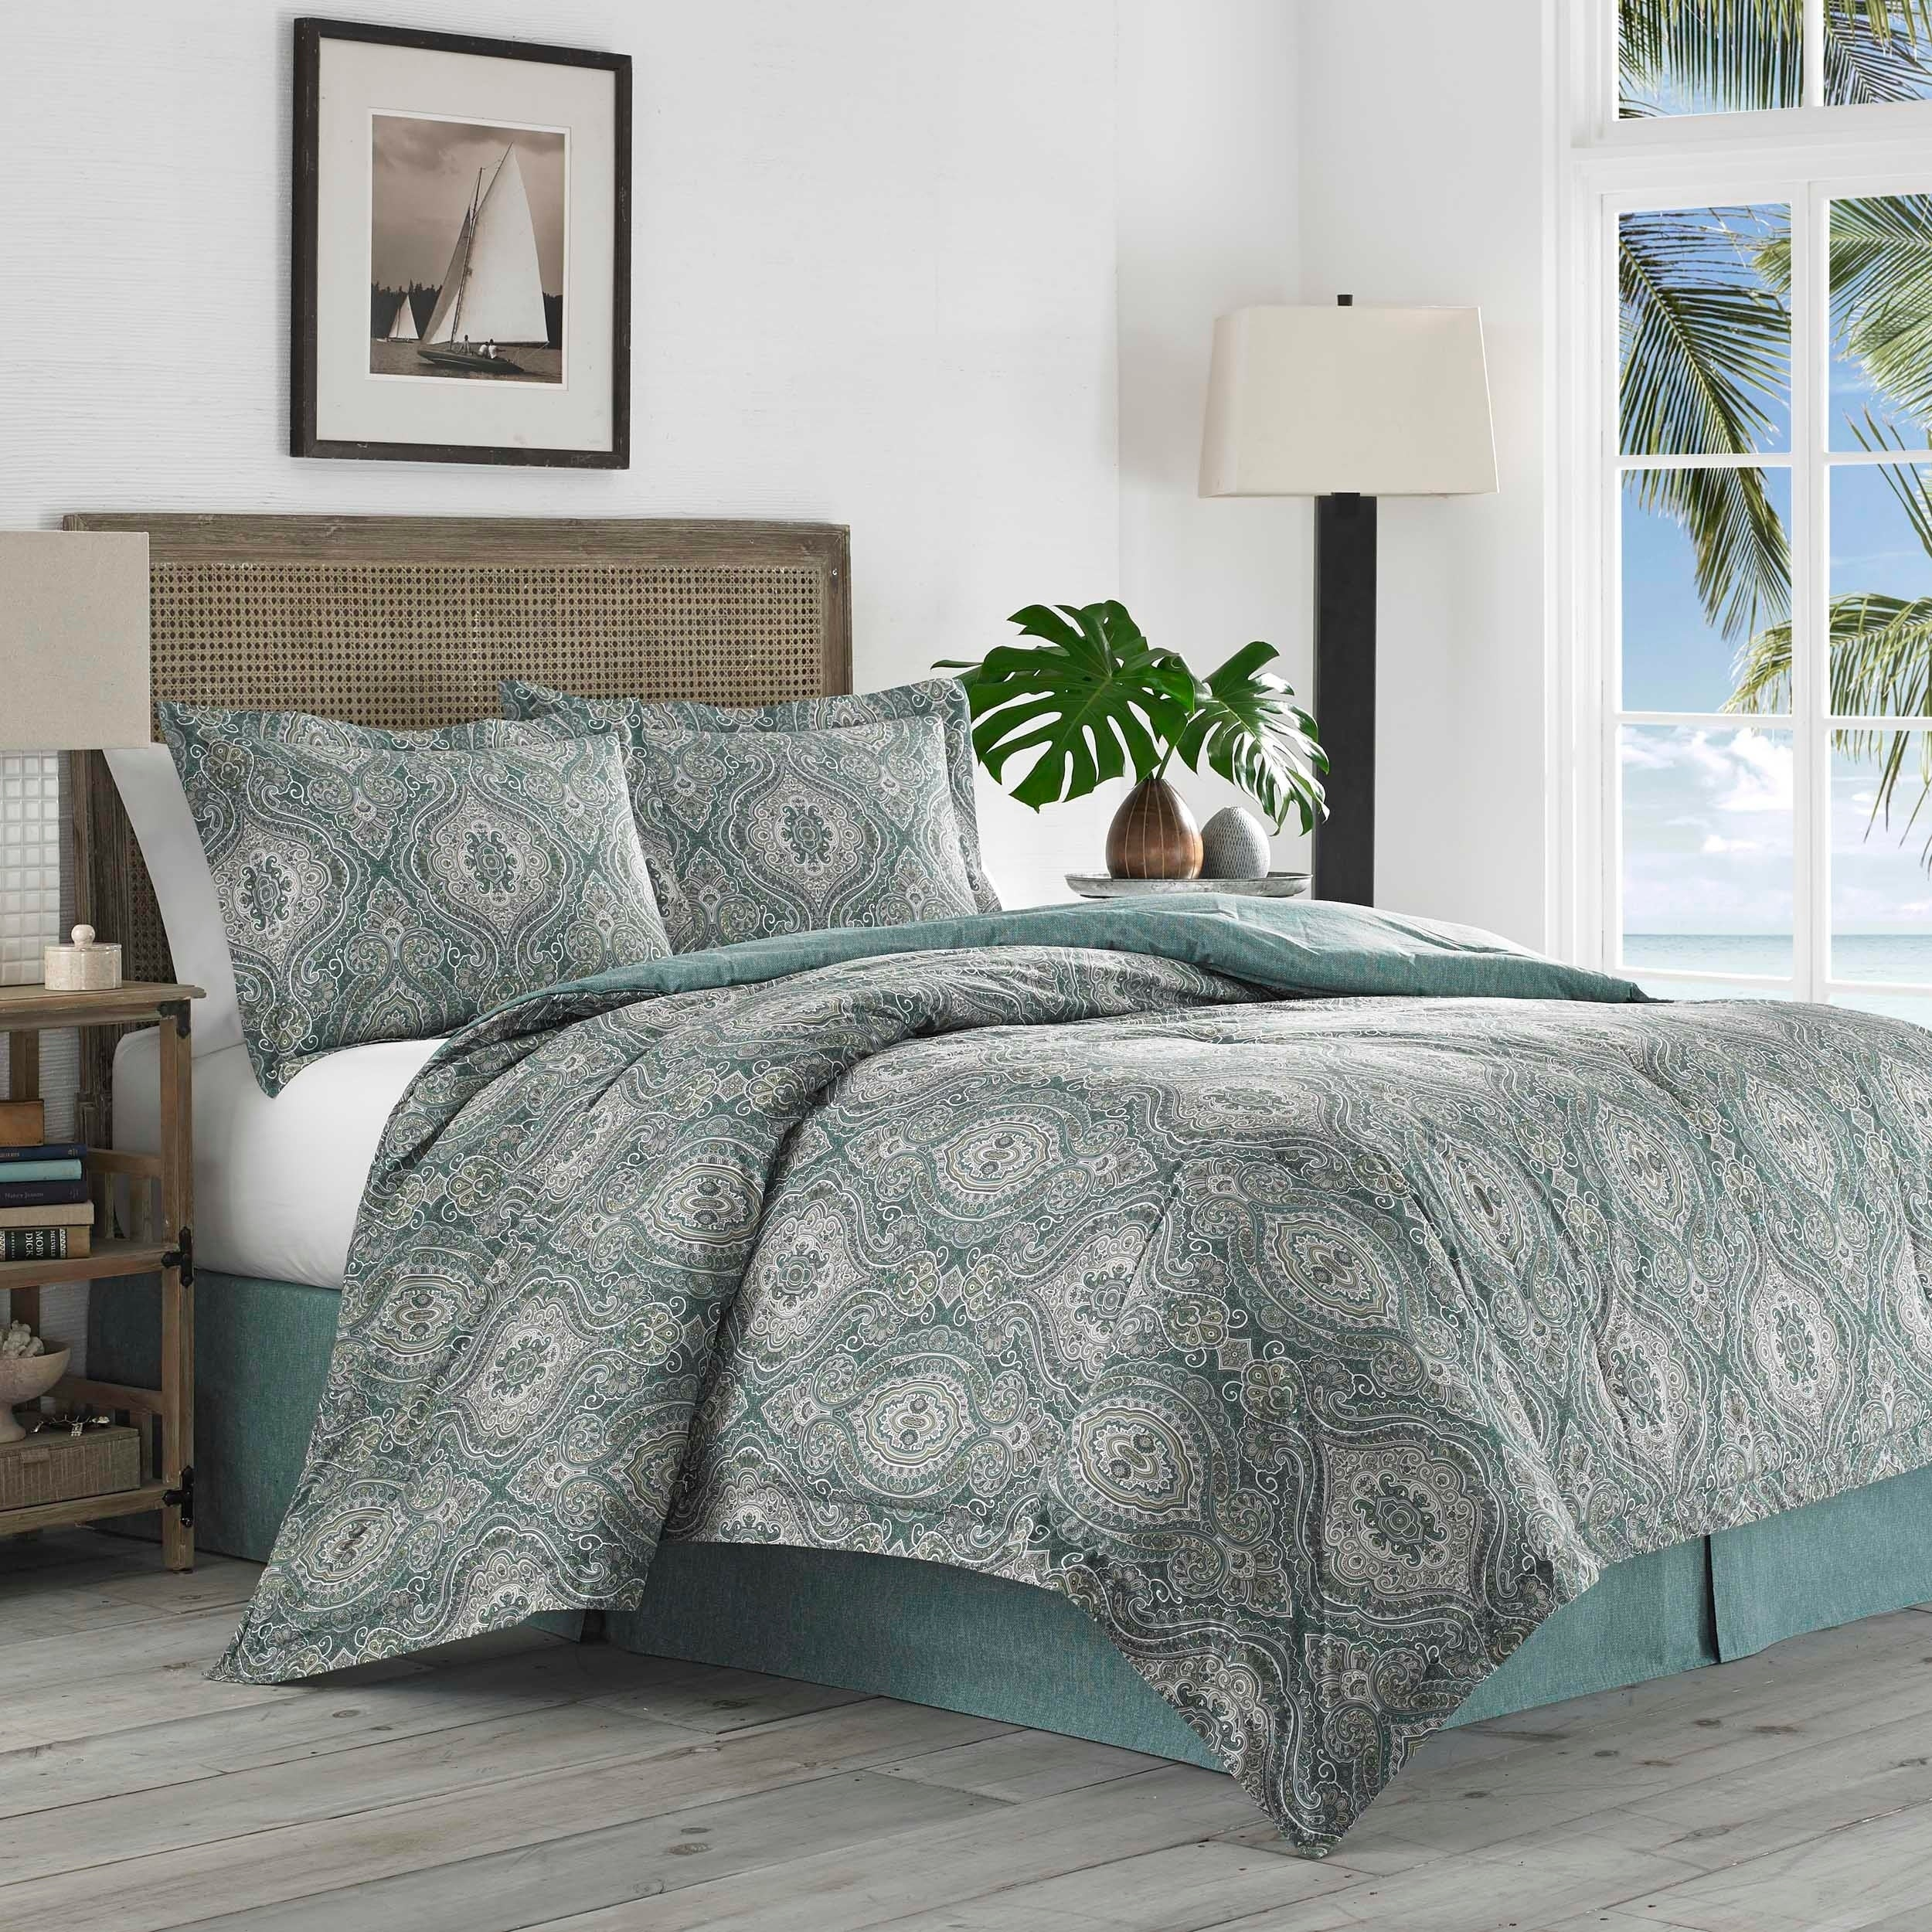 tommy lamps set style bahama furniture quilts size tropical bedding white sets king bedroom quilt full comforter of